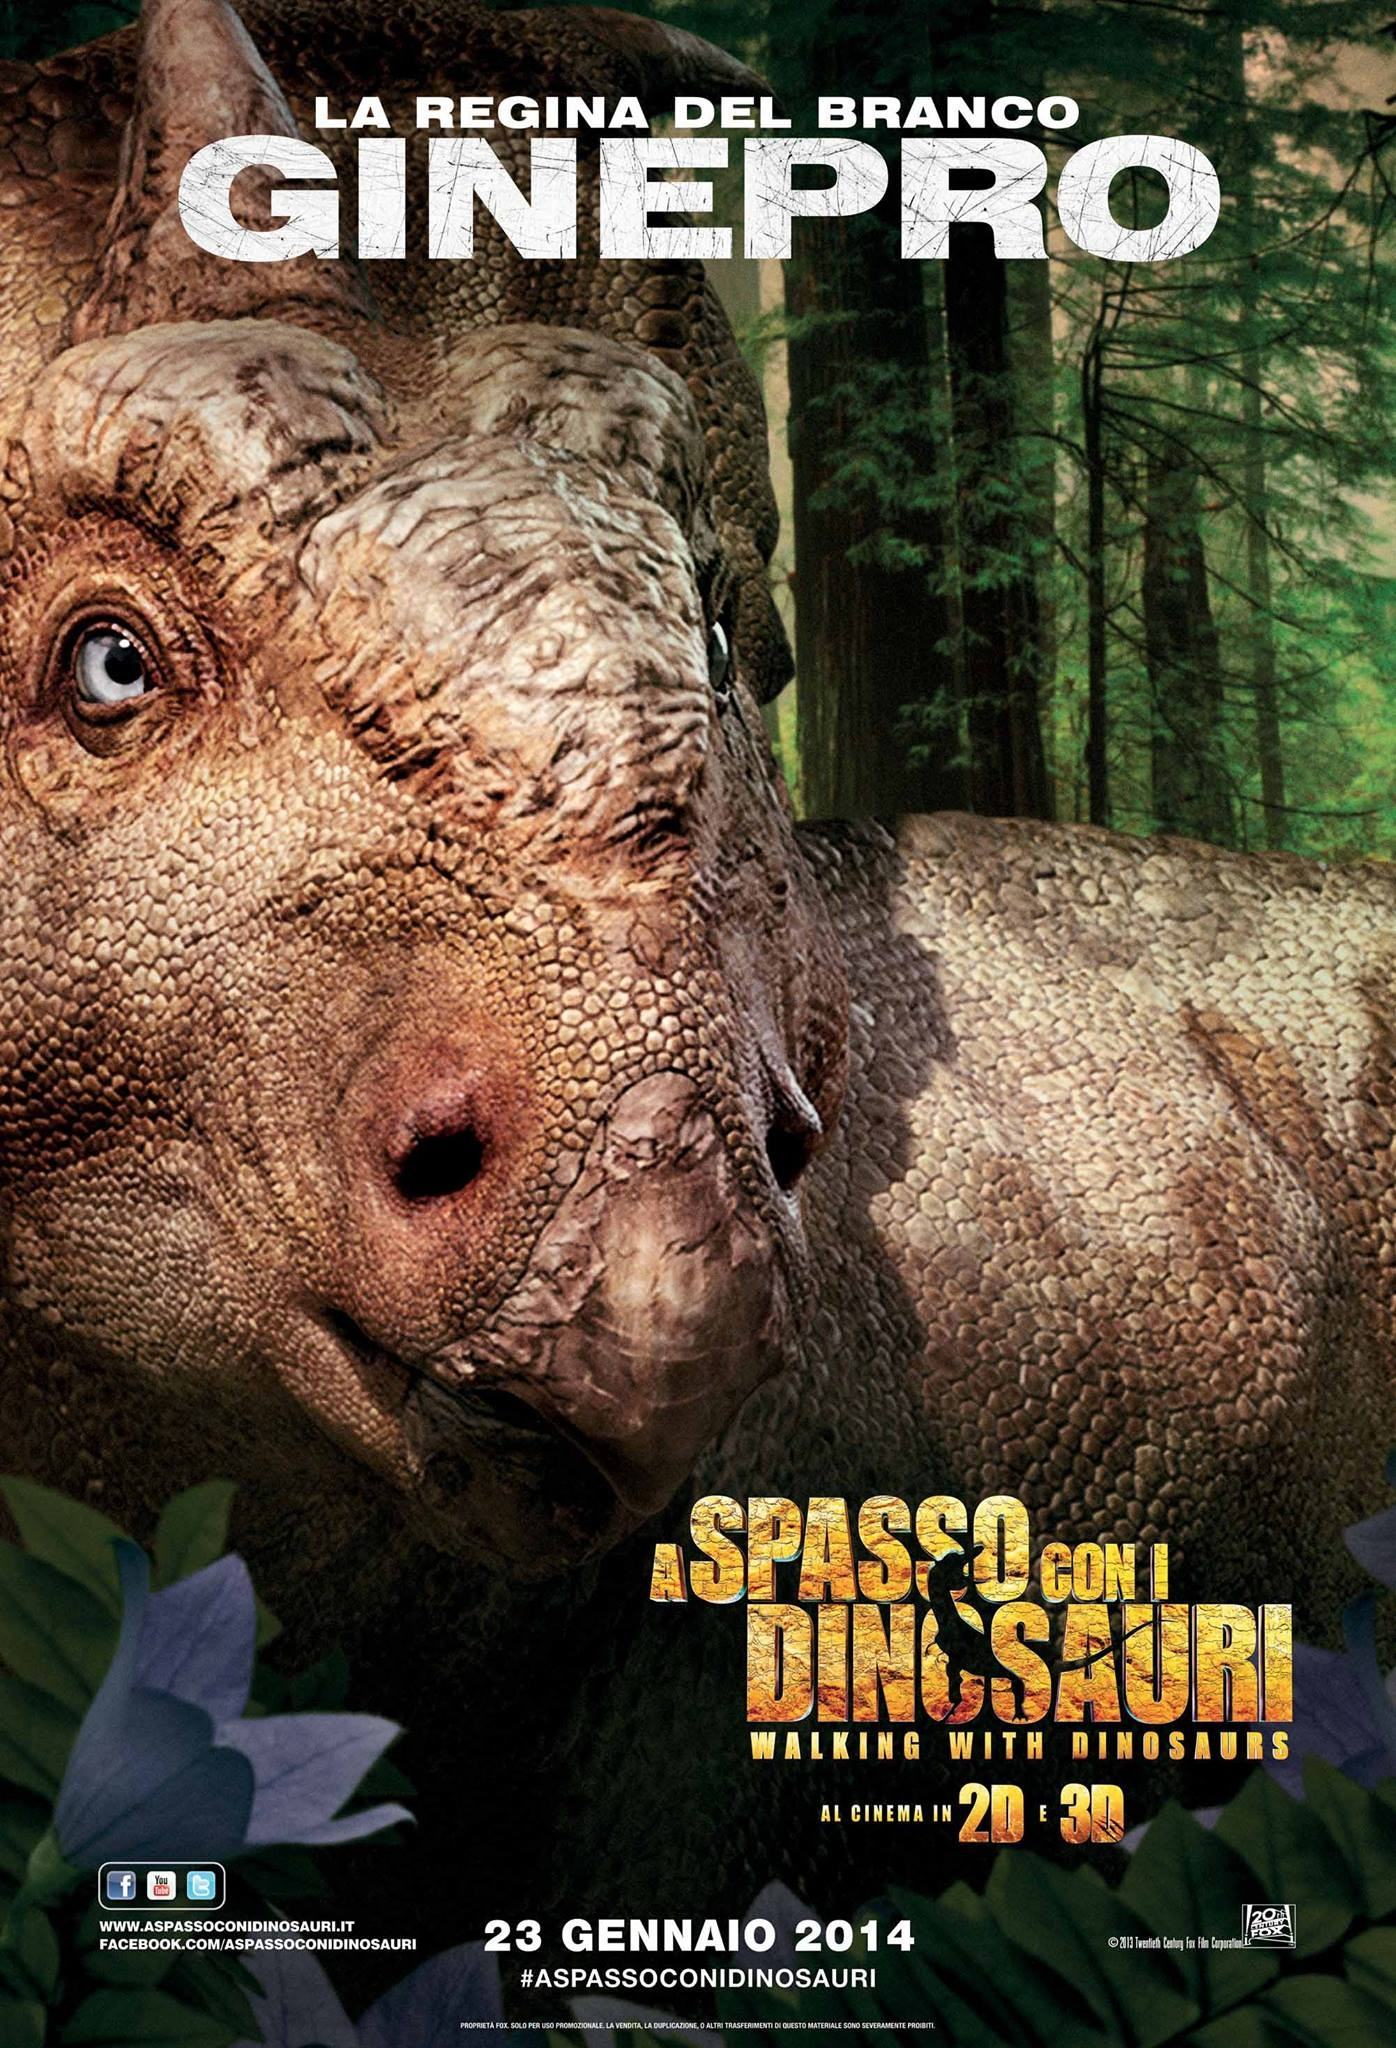 Walking with Dinosaurs-Official Poster Banner PROMO BANNER-27SETEMBRO2013-05